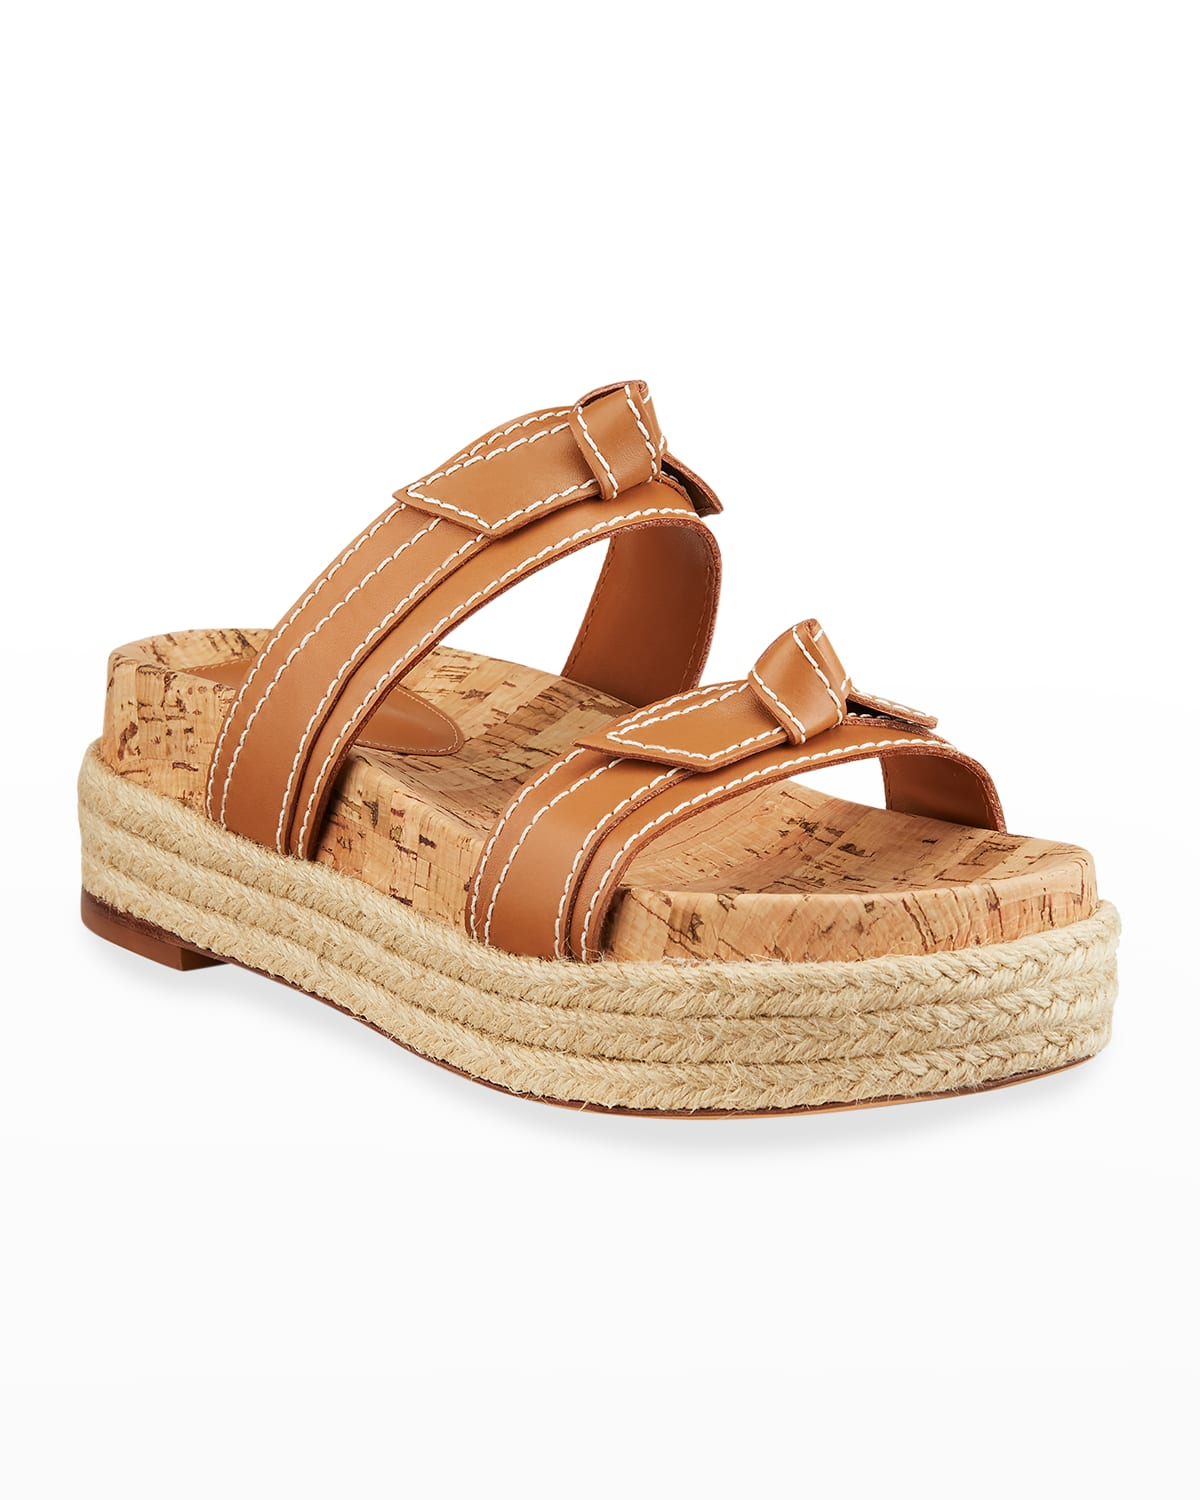 Clarita Knotted Bow Slide Espadrille Sandals